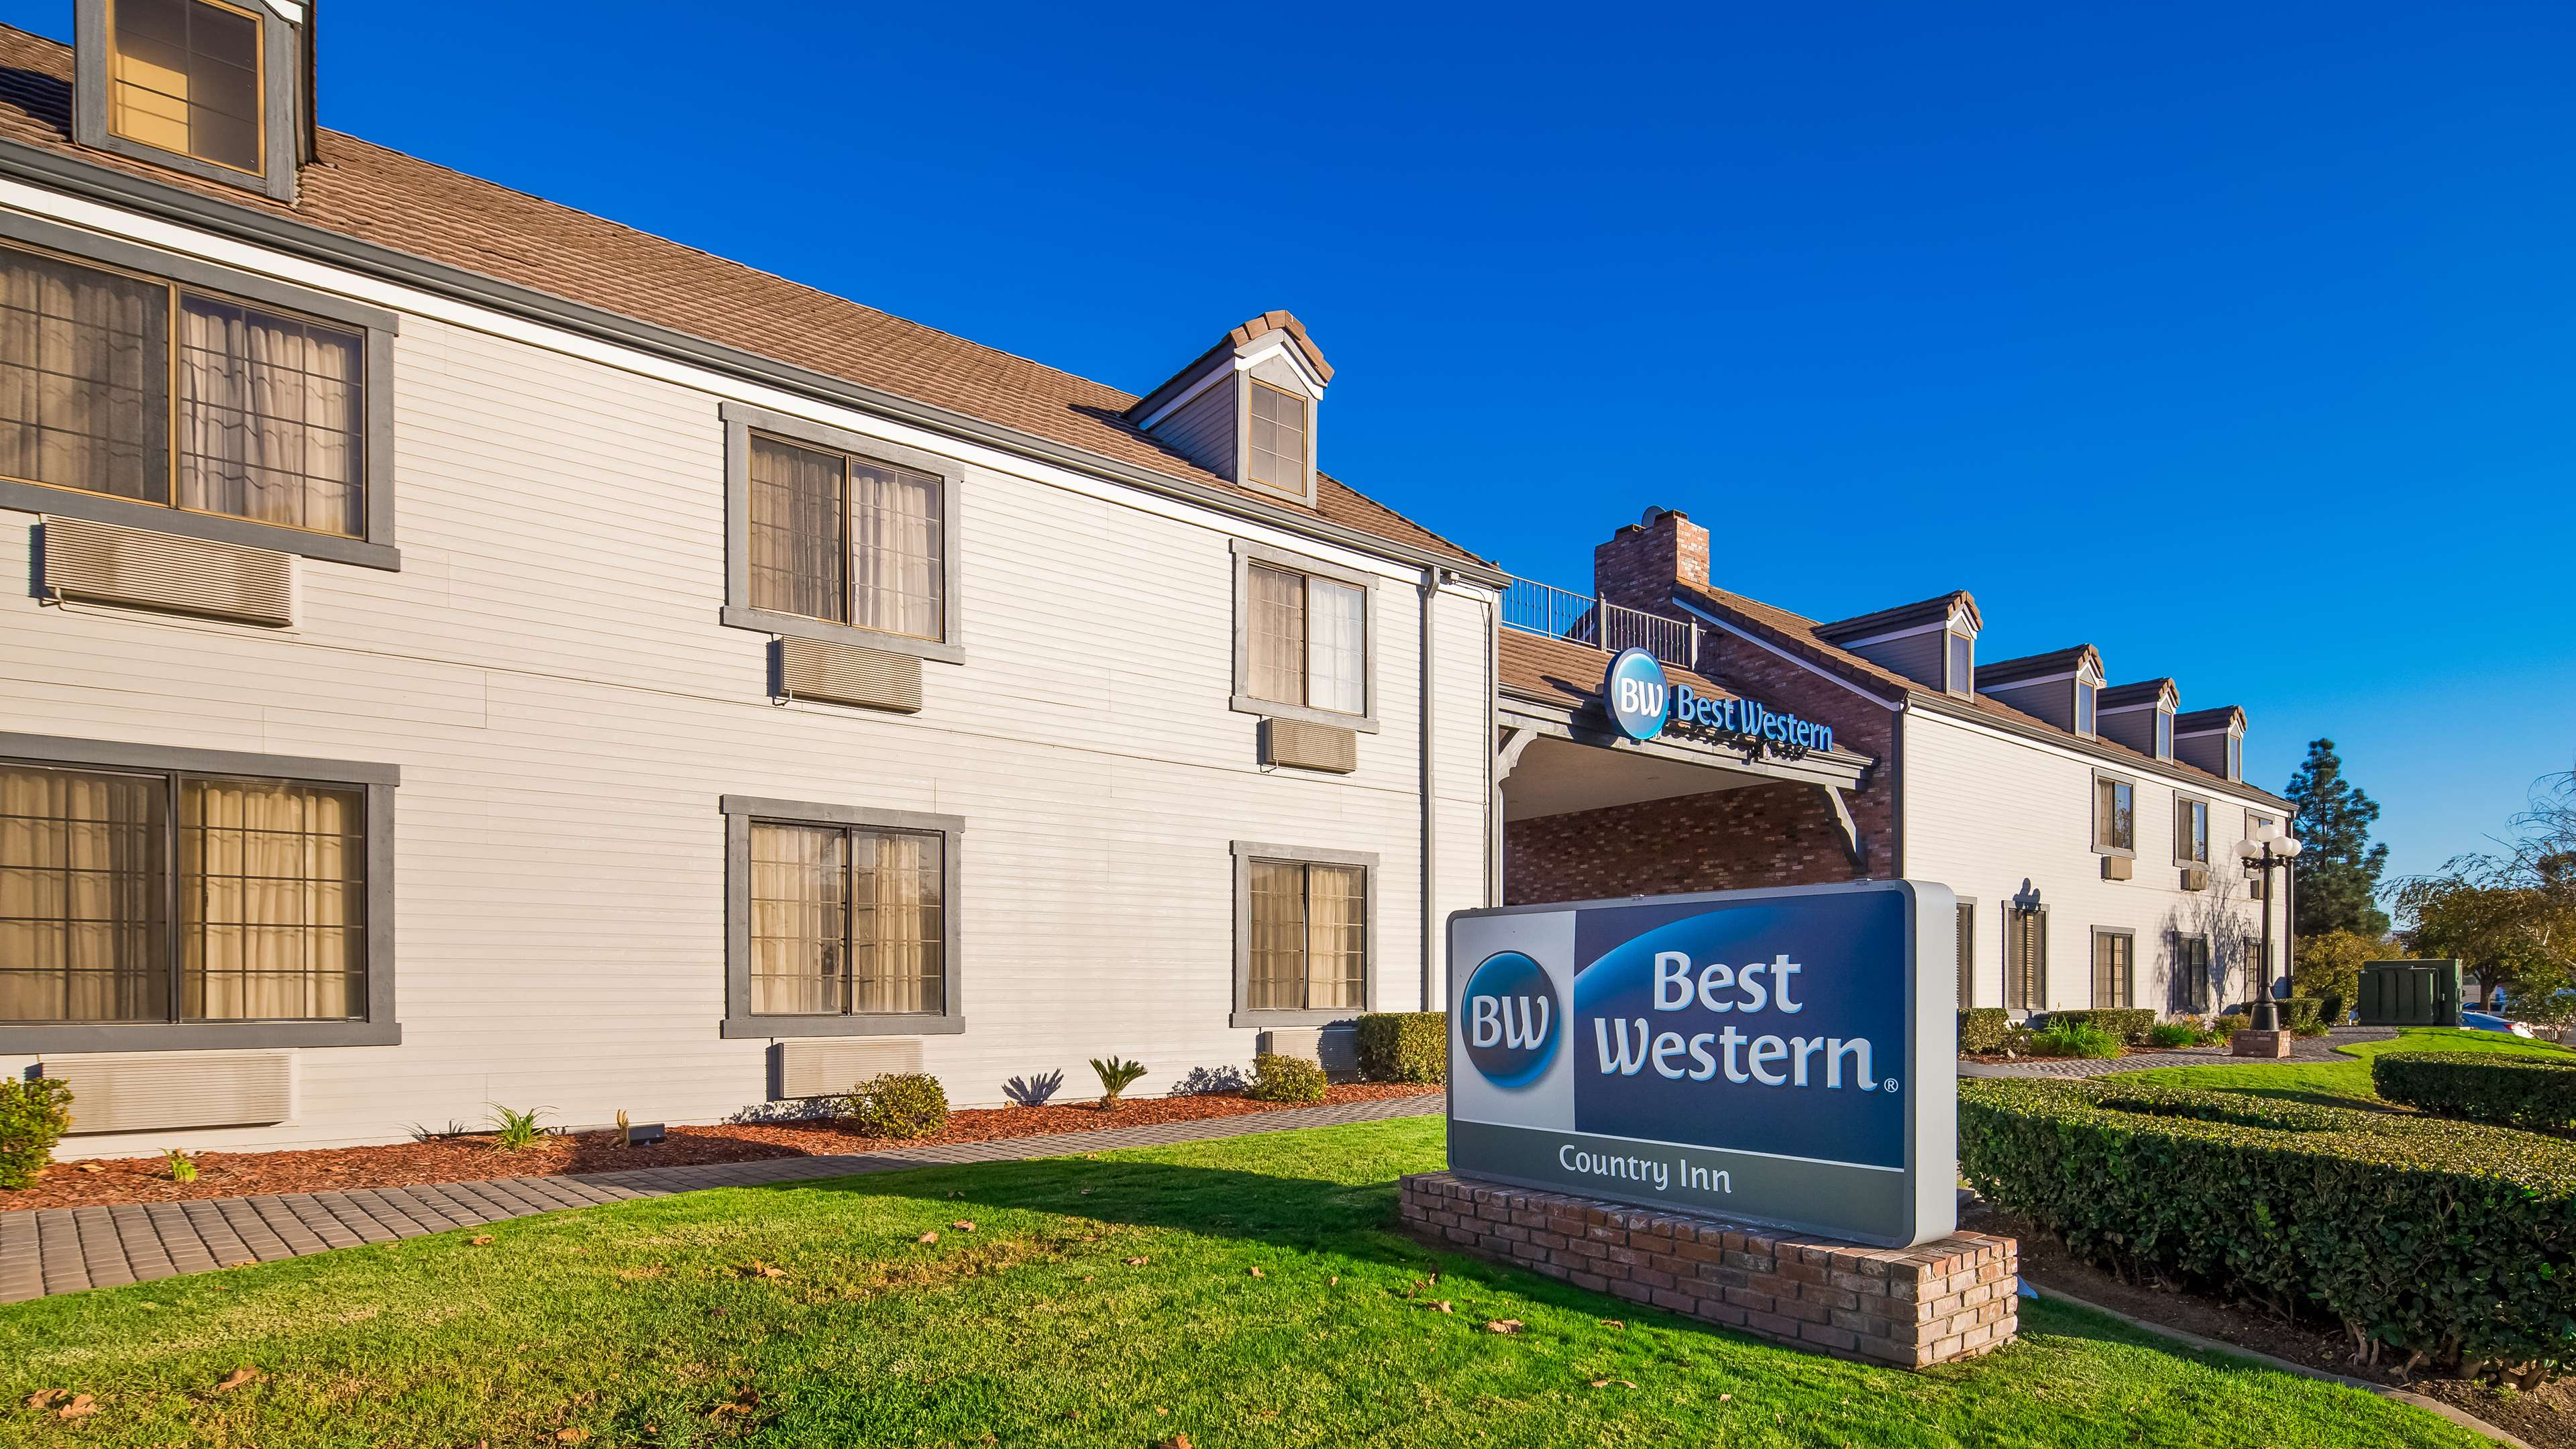 Best Western Country Inn Coupons Temecula CA near me ...